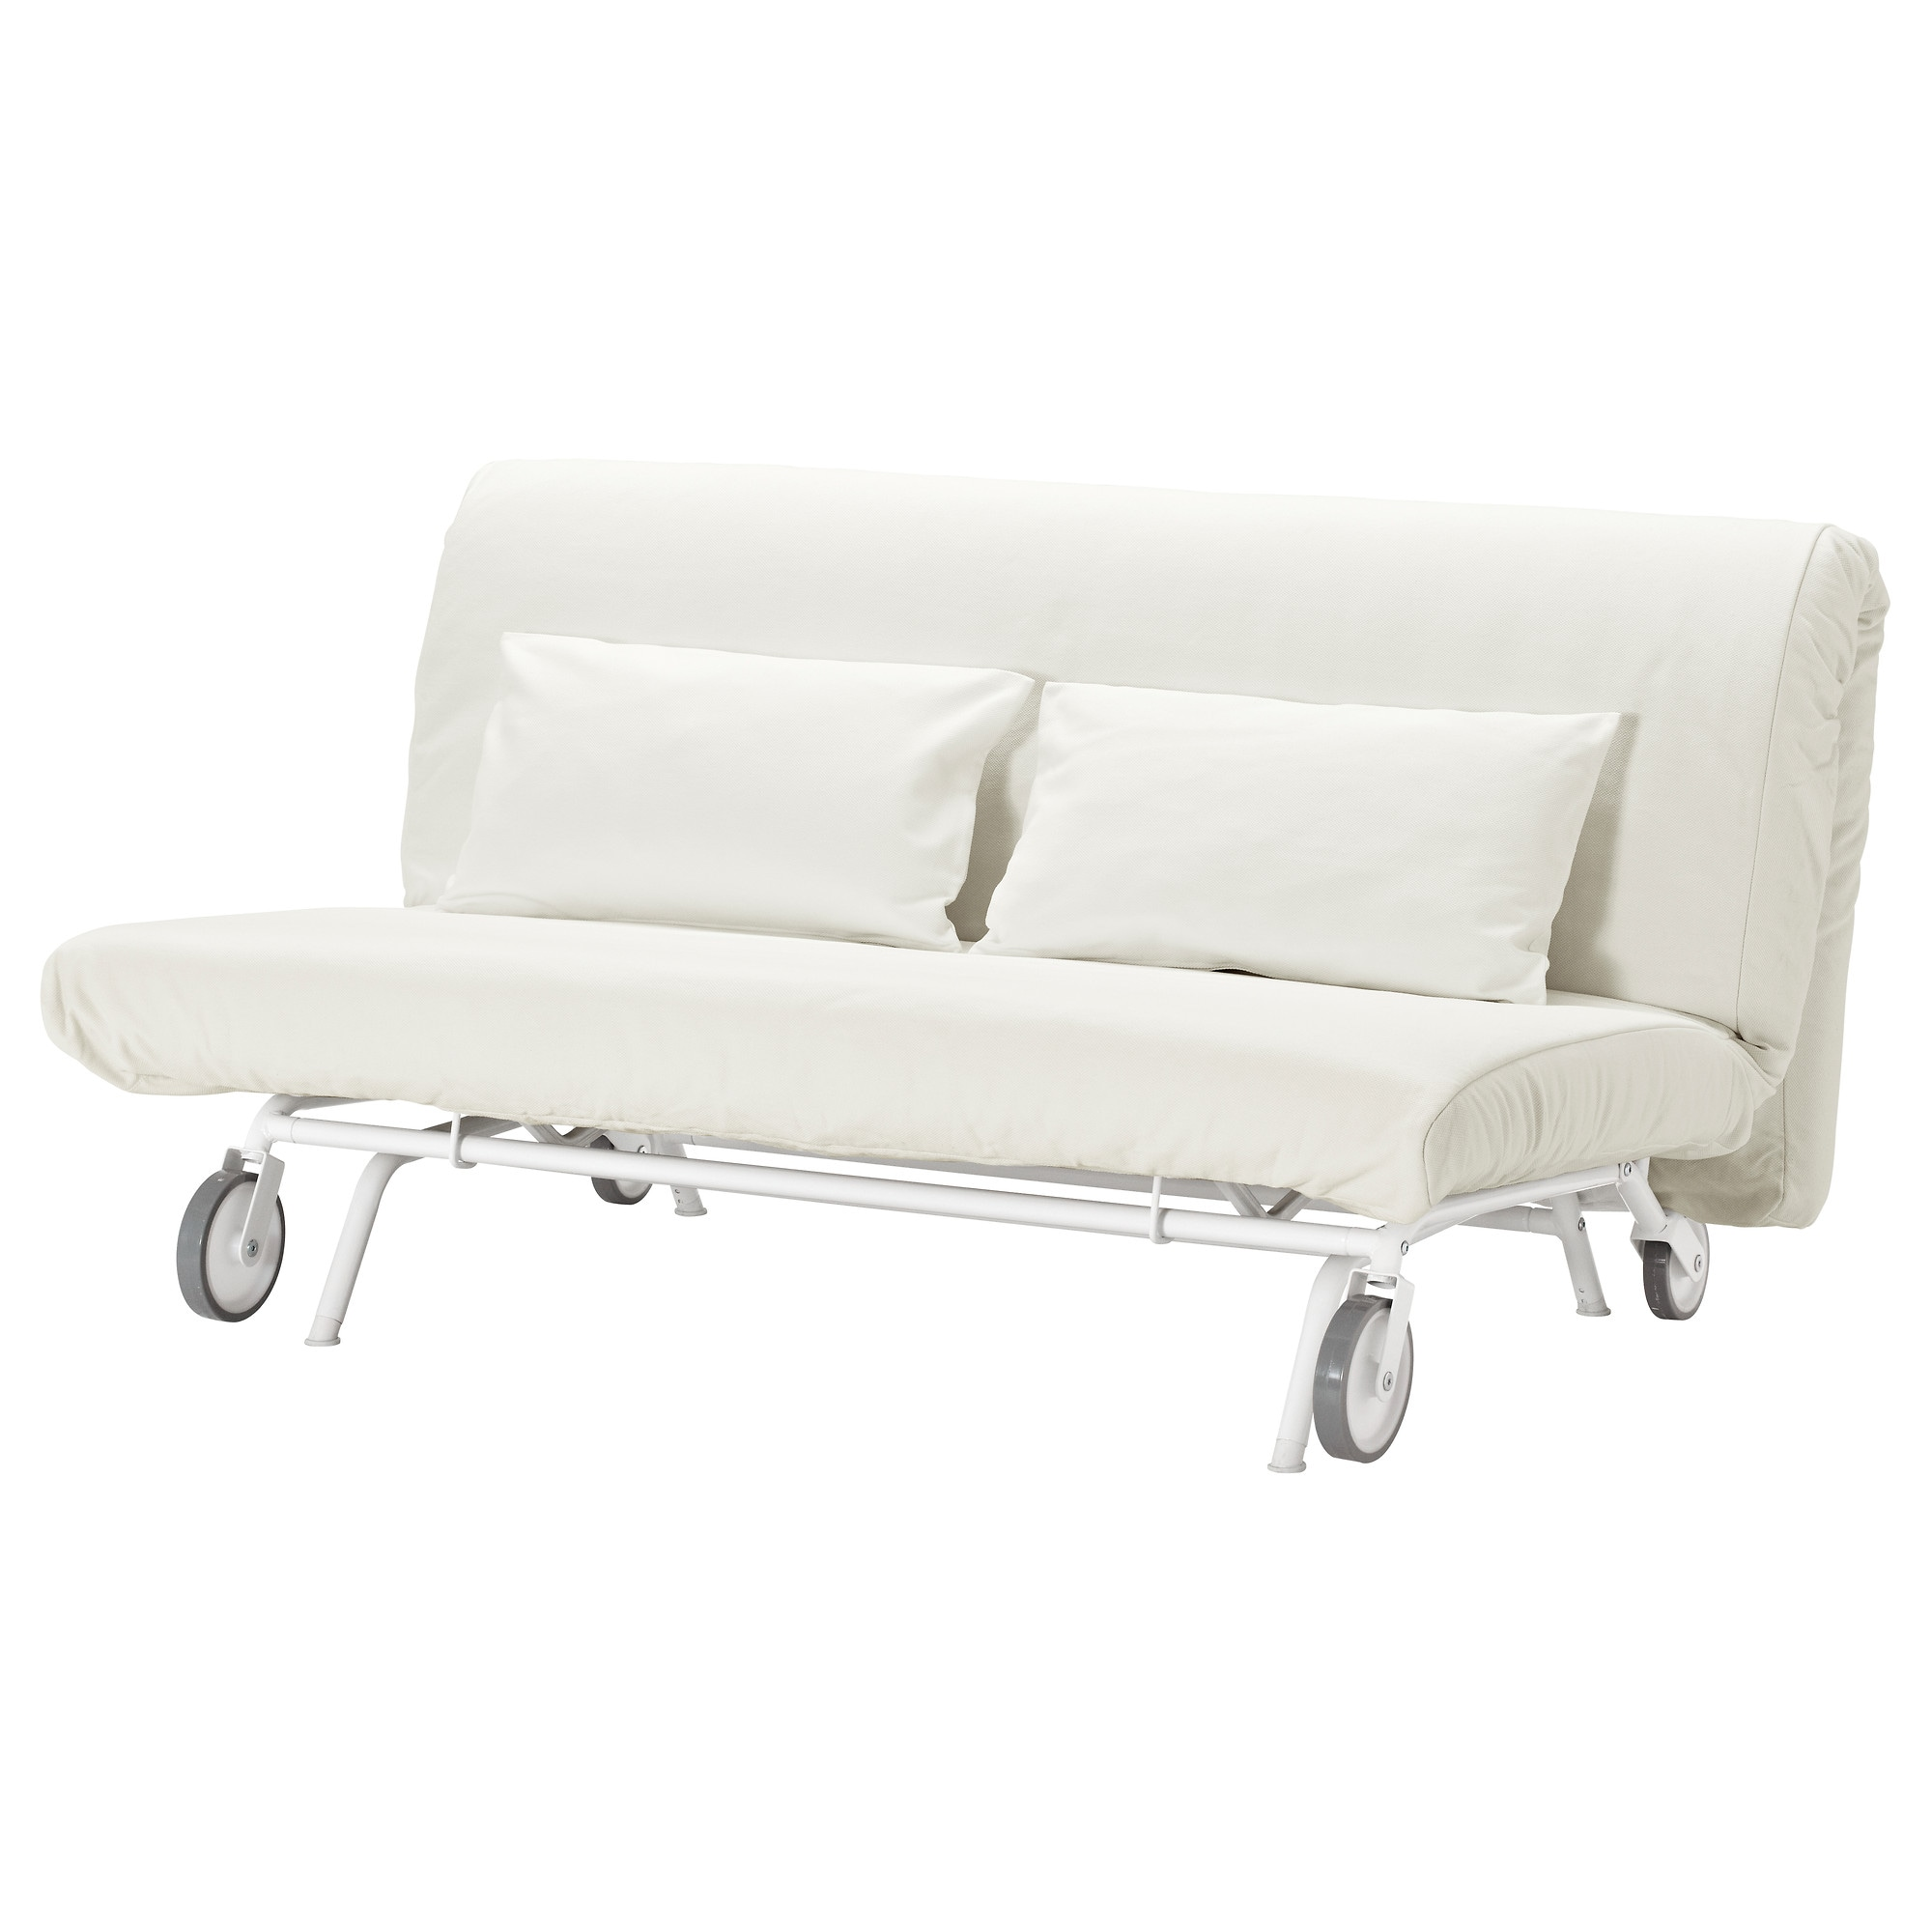 IKEA PS LVS Sleeper sofa Grsbo white IKEA